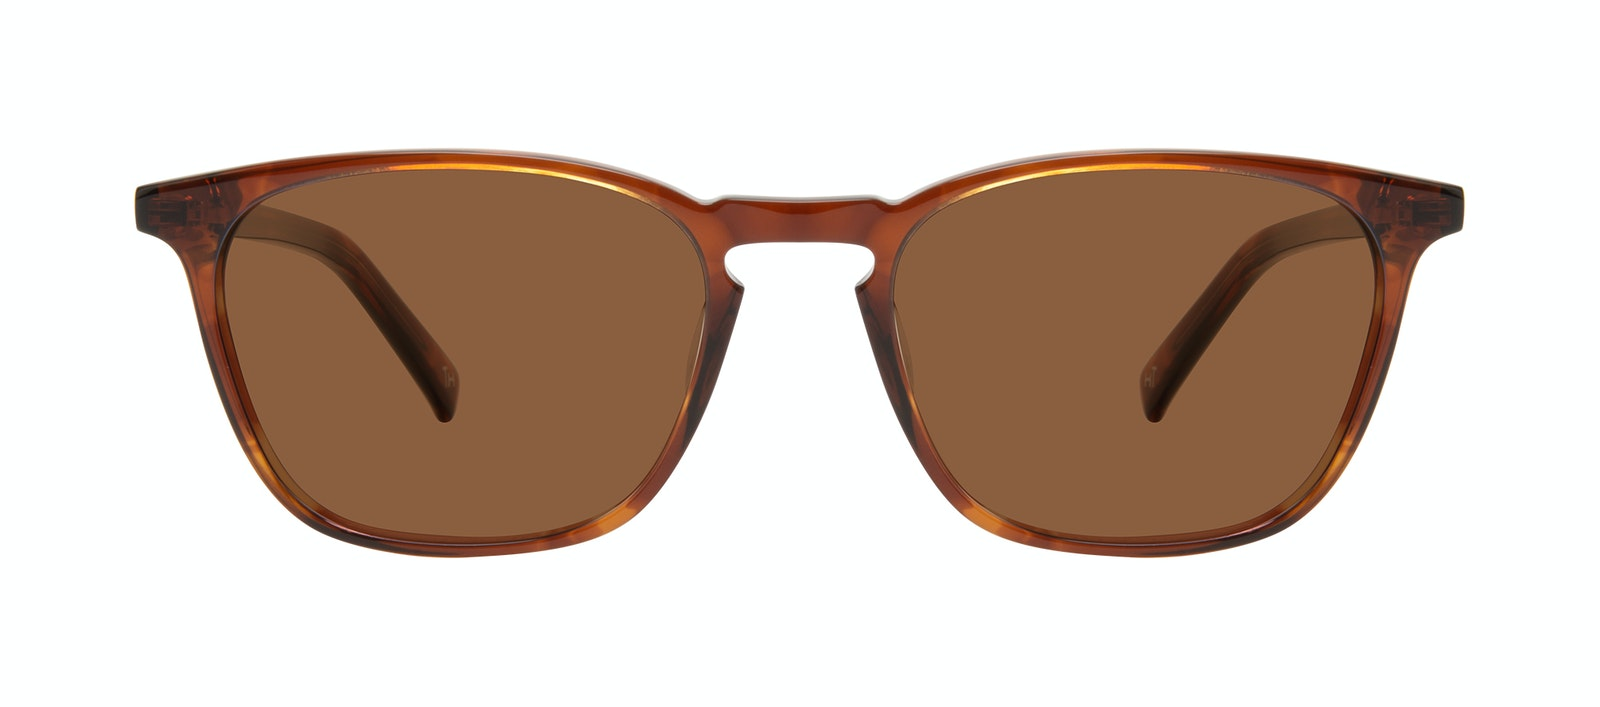 Affordable Fashion Glasses Square Sunglasses Men Louise XL Cedar Front